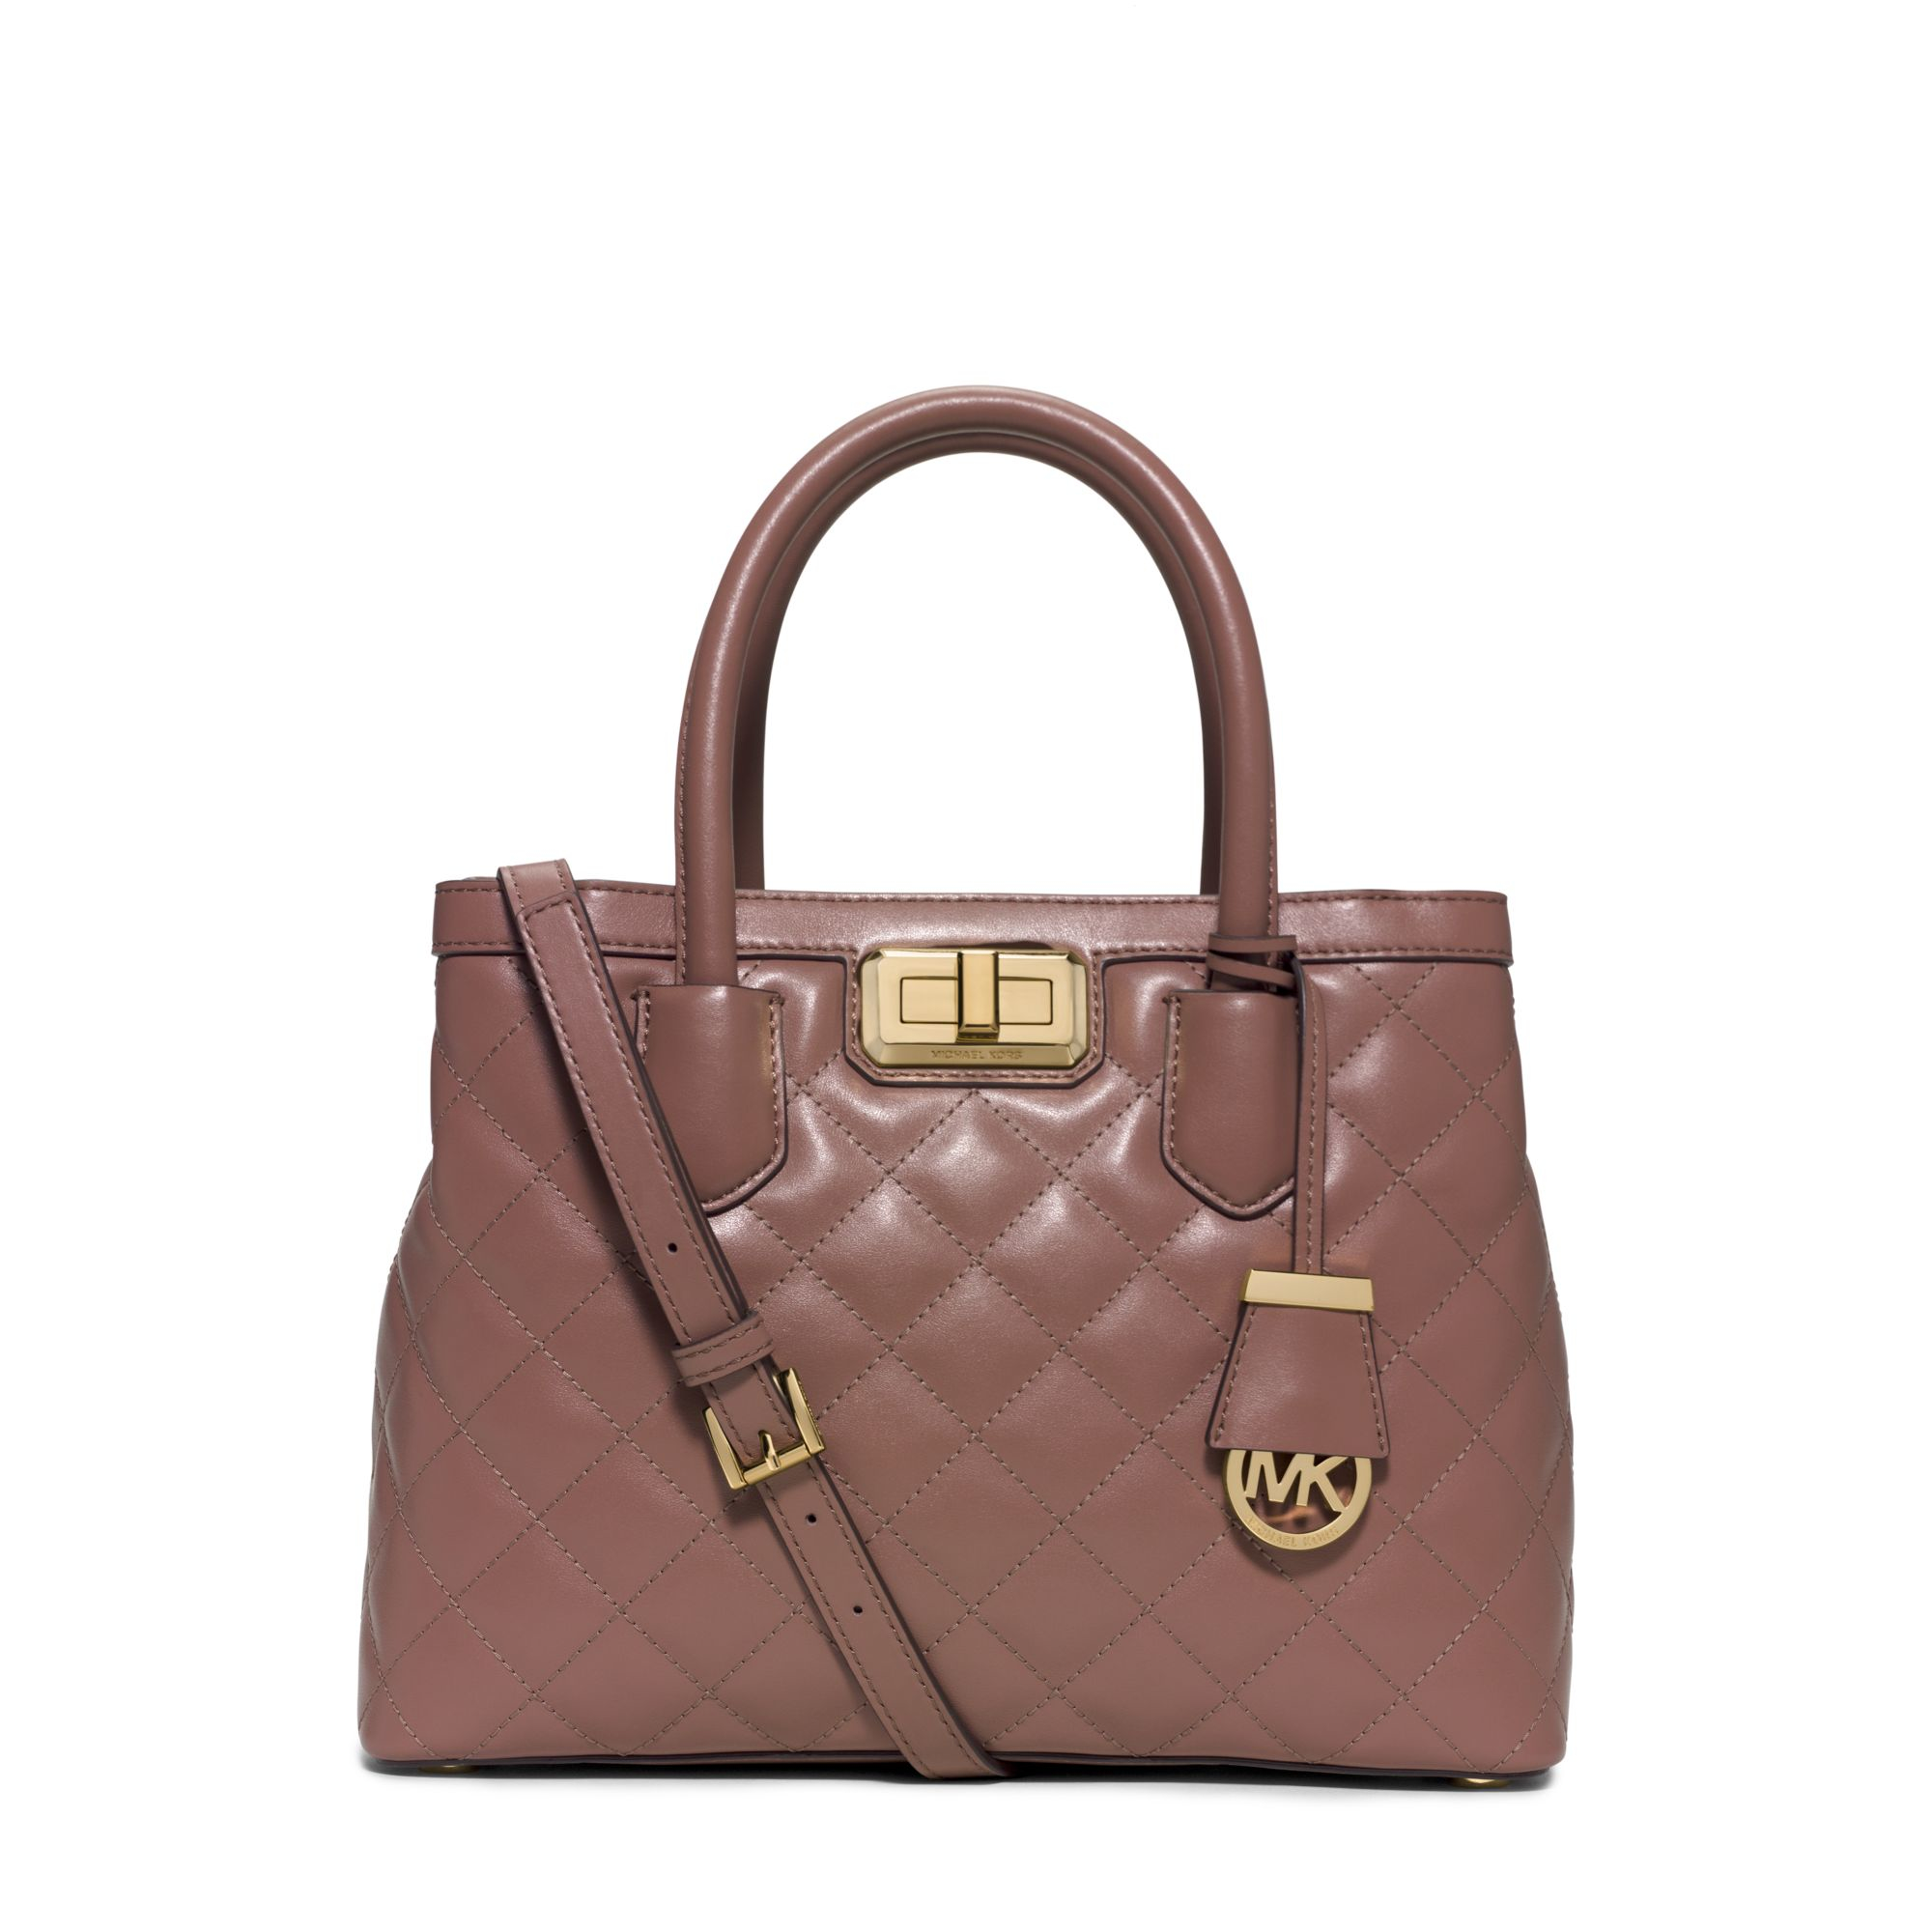 michael kors hannah medium quilted leather satchel in pink dusty rose lyst. Black Bedroom Furniture Sets. Home Design Ideas